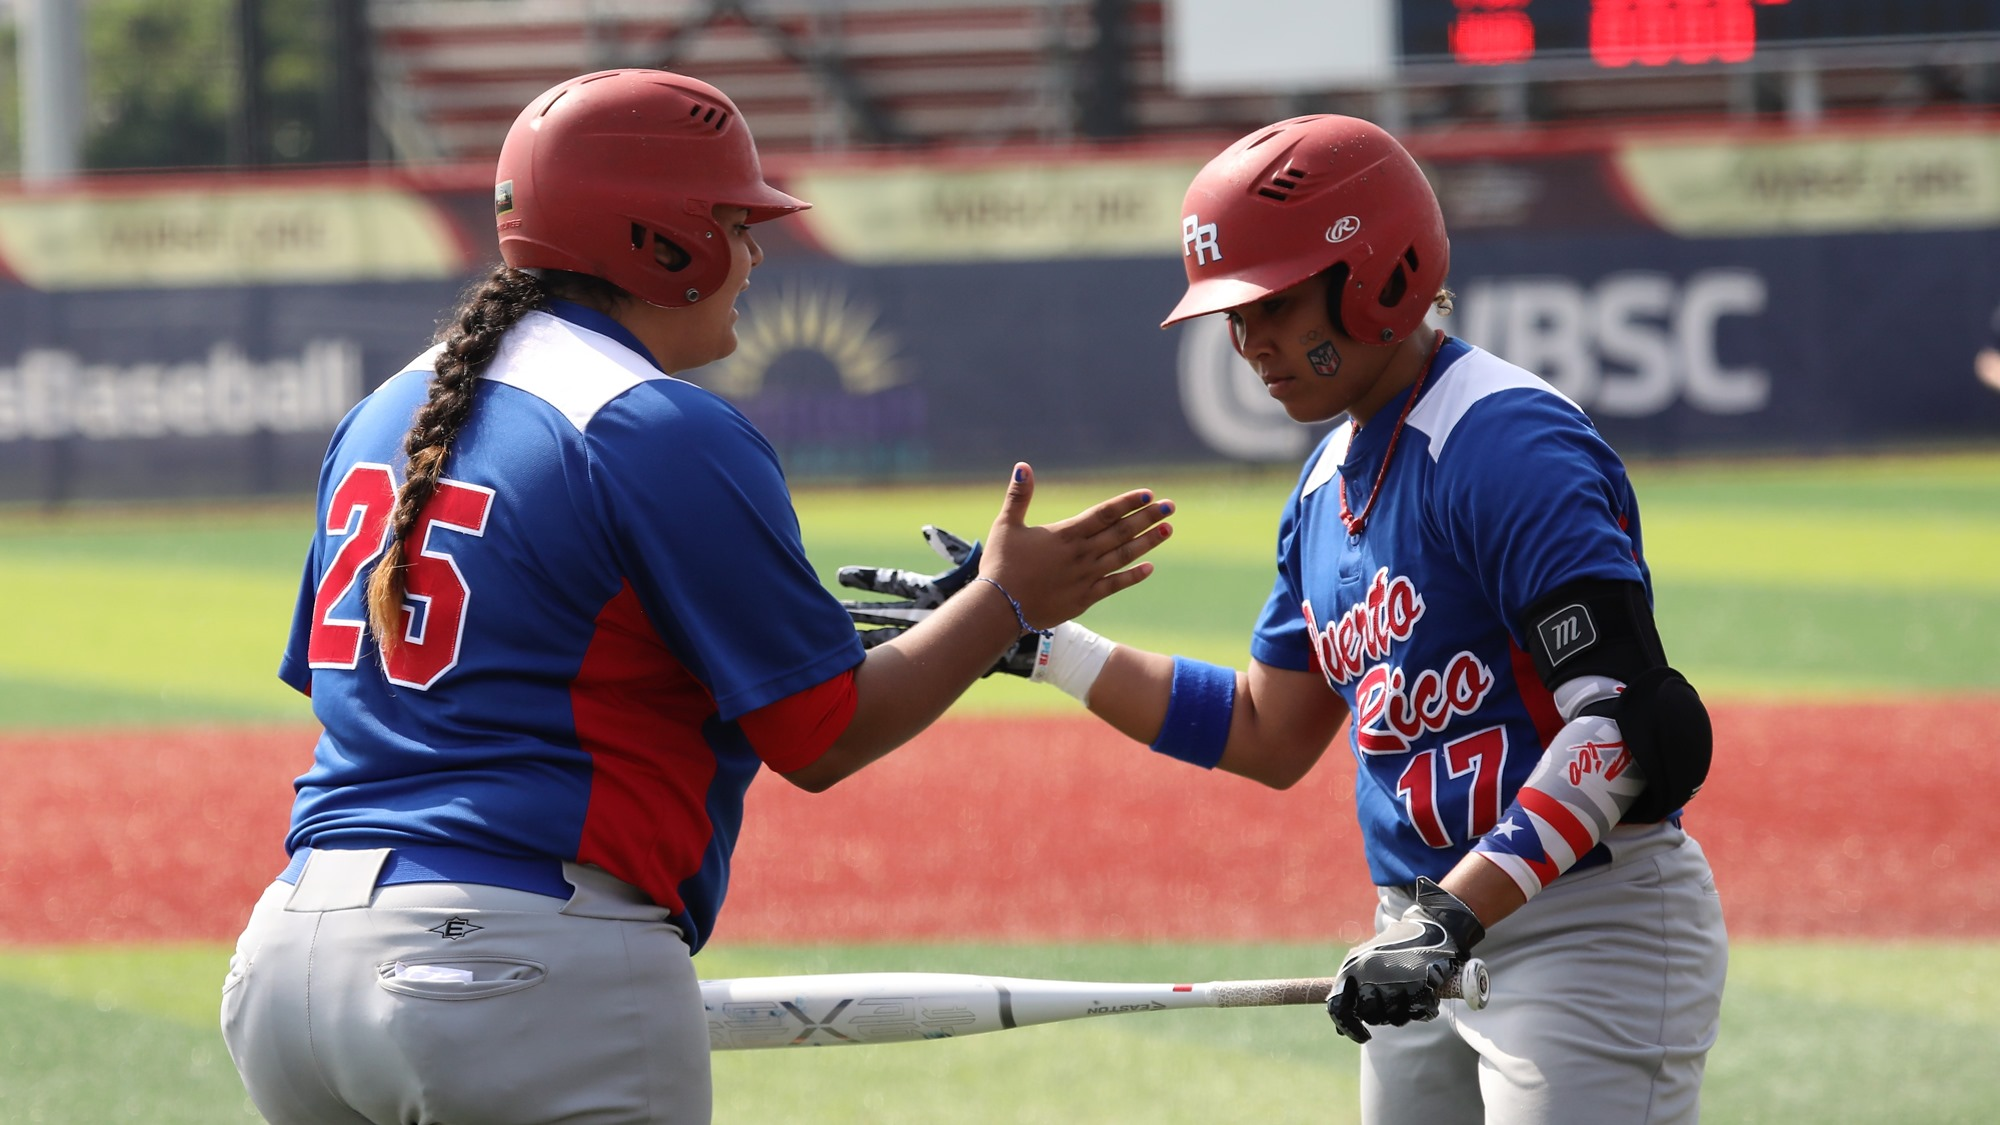 Puerto Rico had entered the final inning with a 10-0 lead